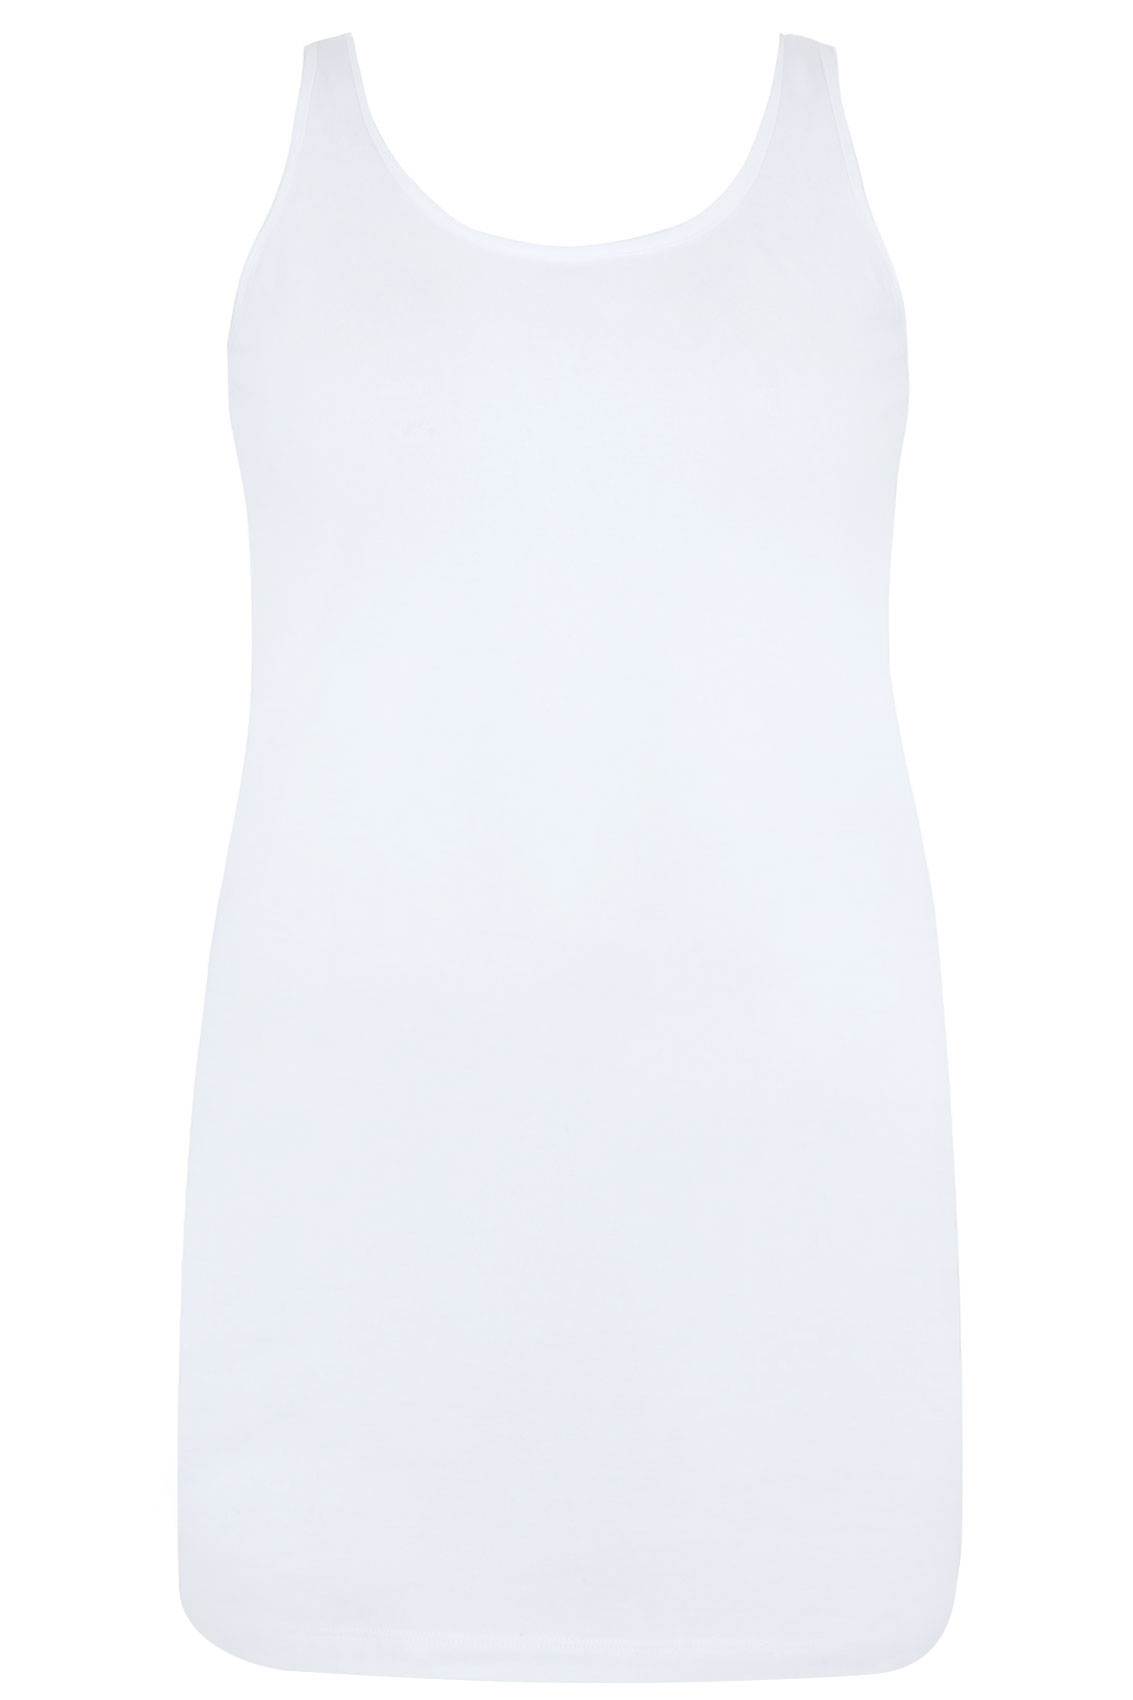 White longline vest top plus size 16 to 36 for Vest top template